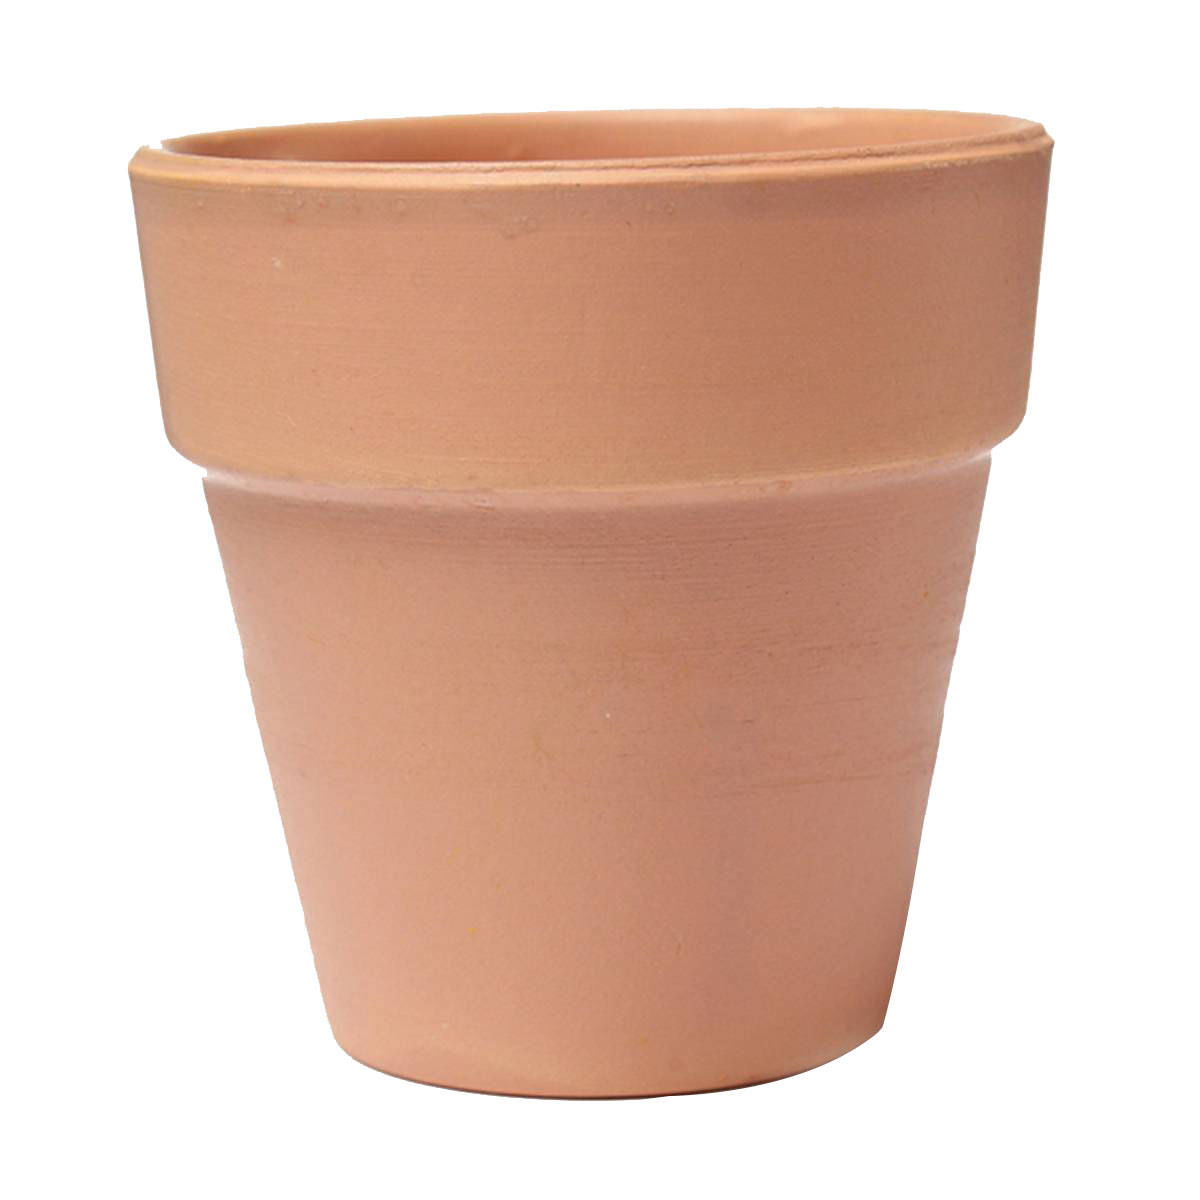 Ceramic Pottery For Plants Terracotta Pot Clay Ceramic Pottery Planter Flower Pots Ws